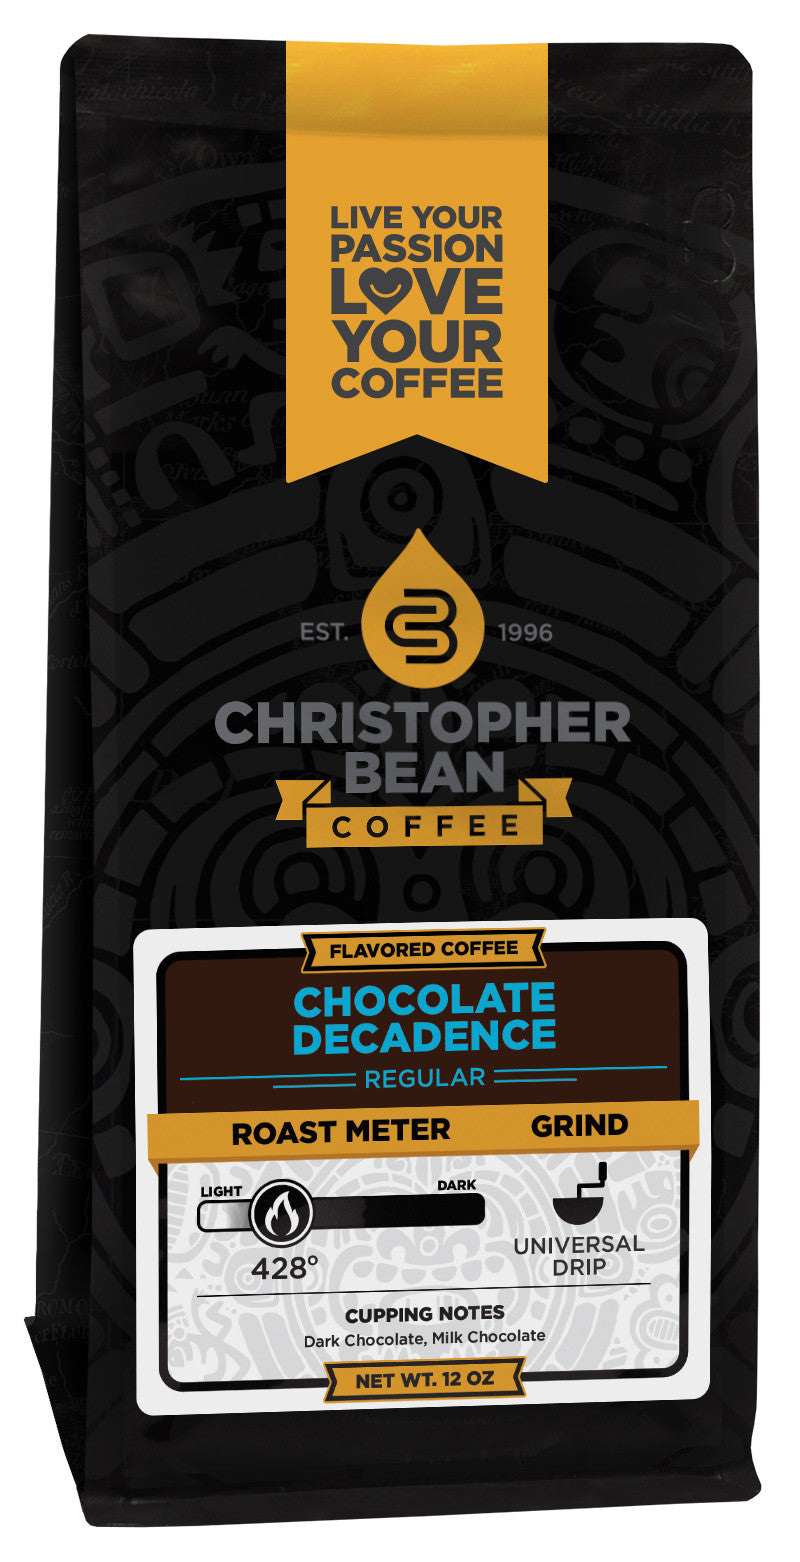 Chocolate Decadence Flavored Coffee – Christopher Bean Coffee Company